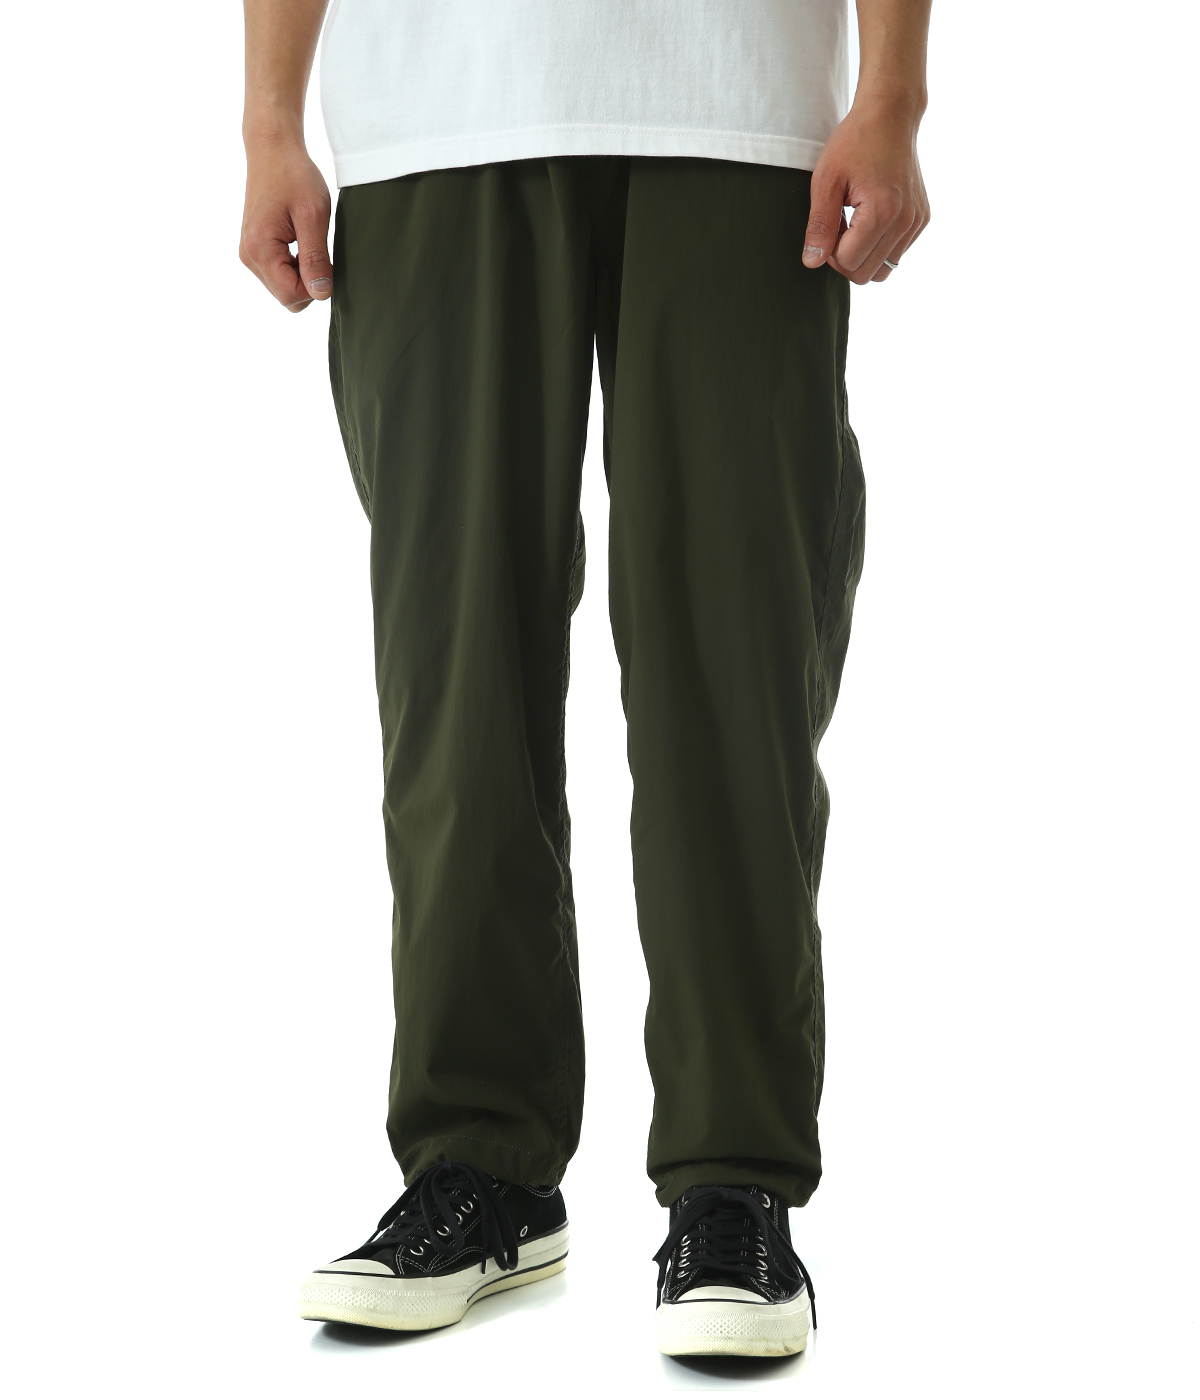 SD COMFORTABLE STRETCH EASY PANTS VER 2.0